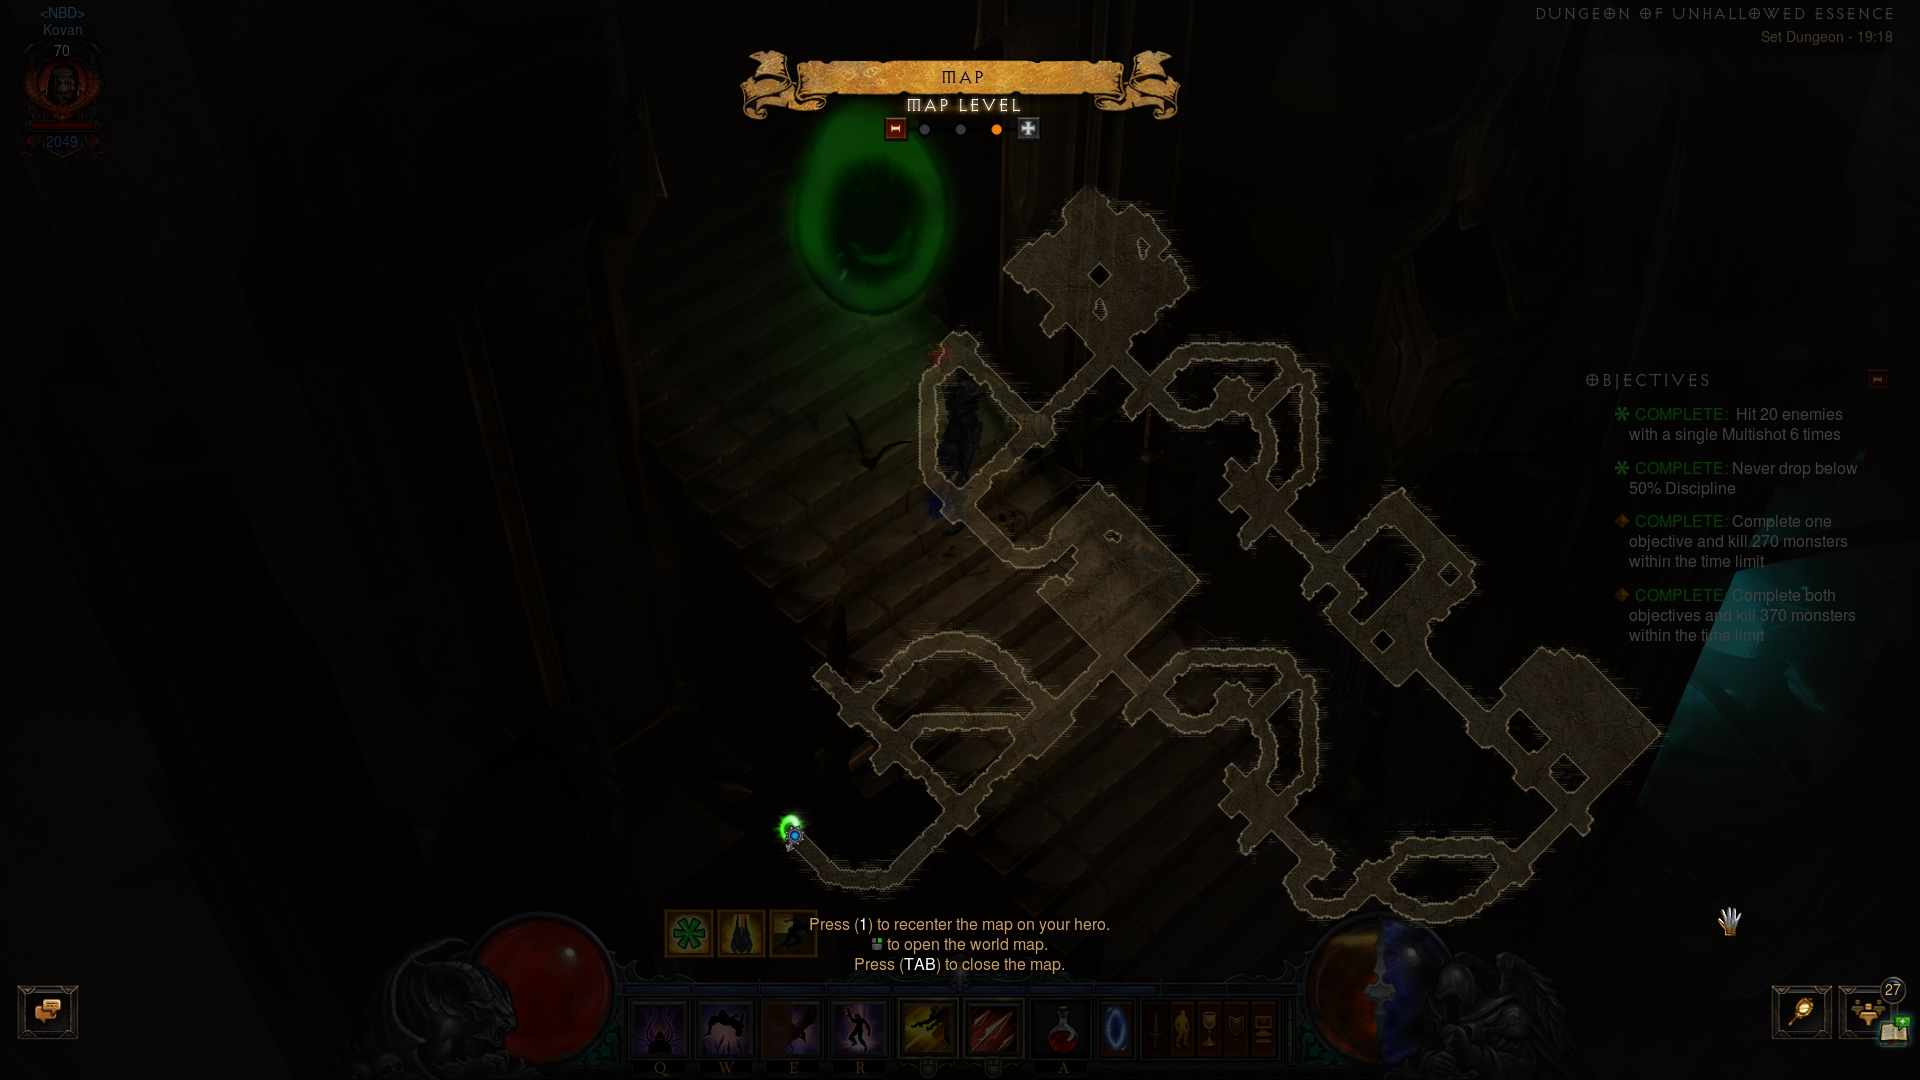 Layout of Unhallowed Essence set dungeon